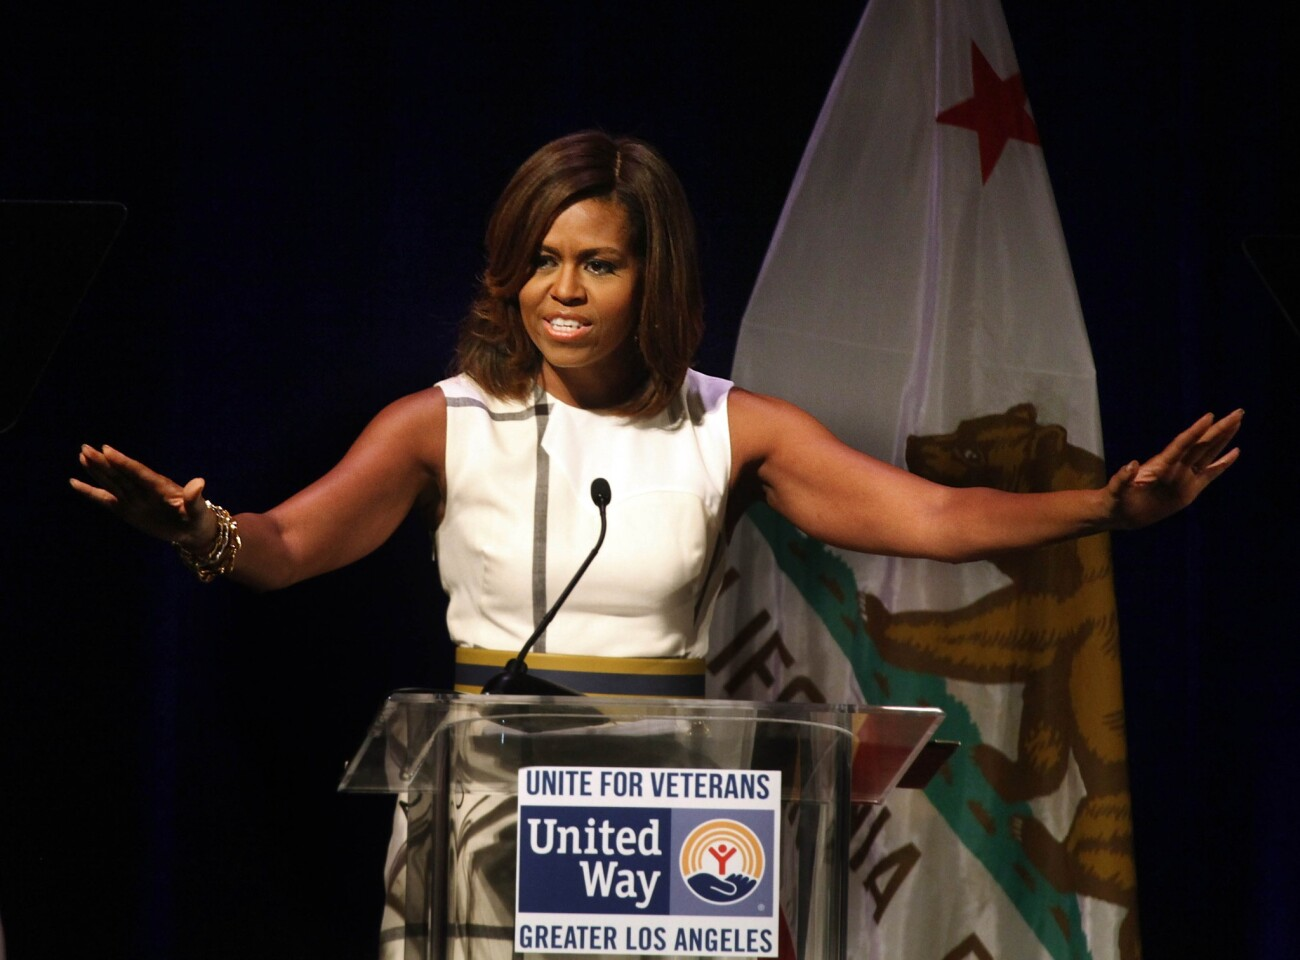 First Lady Michelle Obama delivers the keynote address at the Unite for Veterans Summit, which brought together local, state and federal officials as well as business leaders and community stakeholders to highlight efforts to help veterans, at the Hyatt Regency Century Plaza.